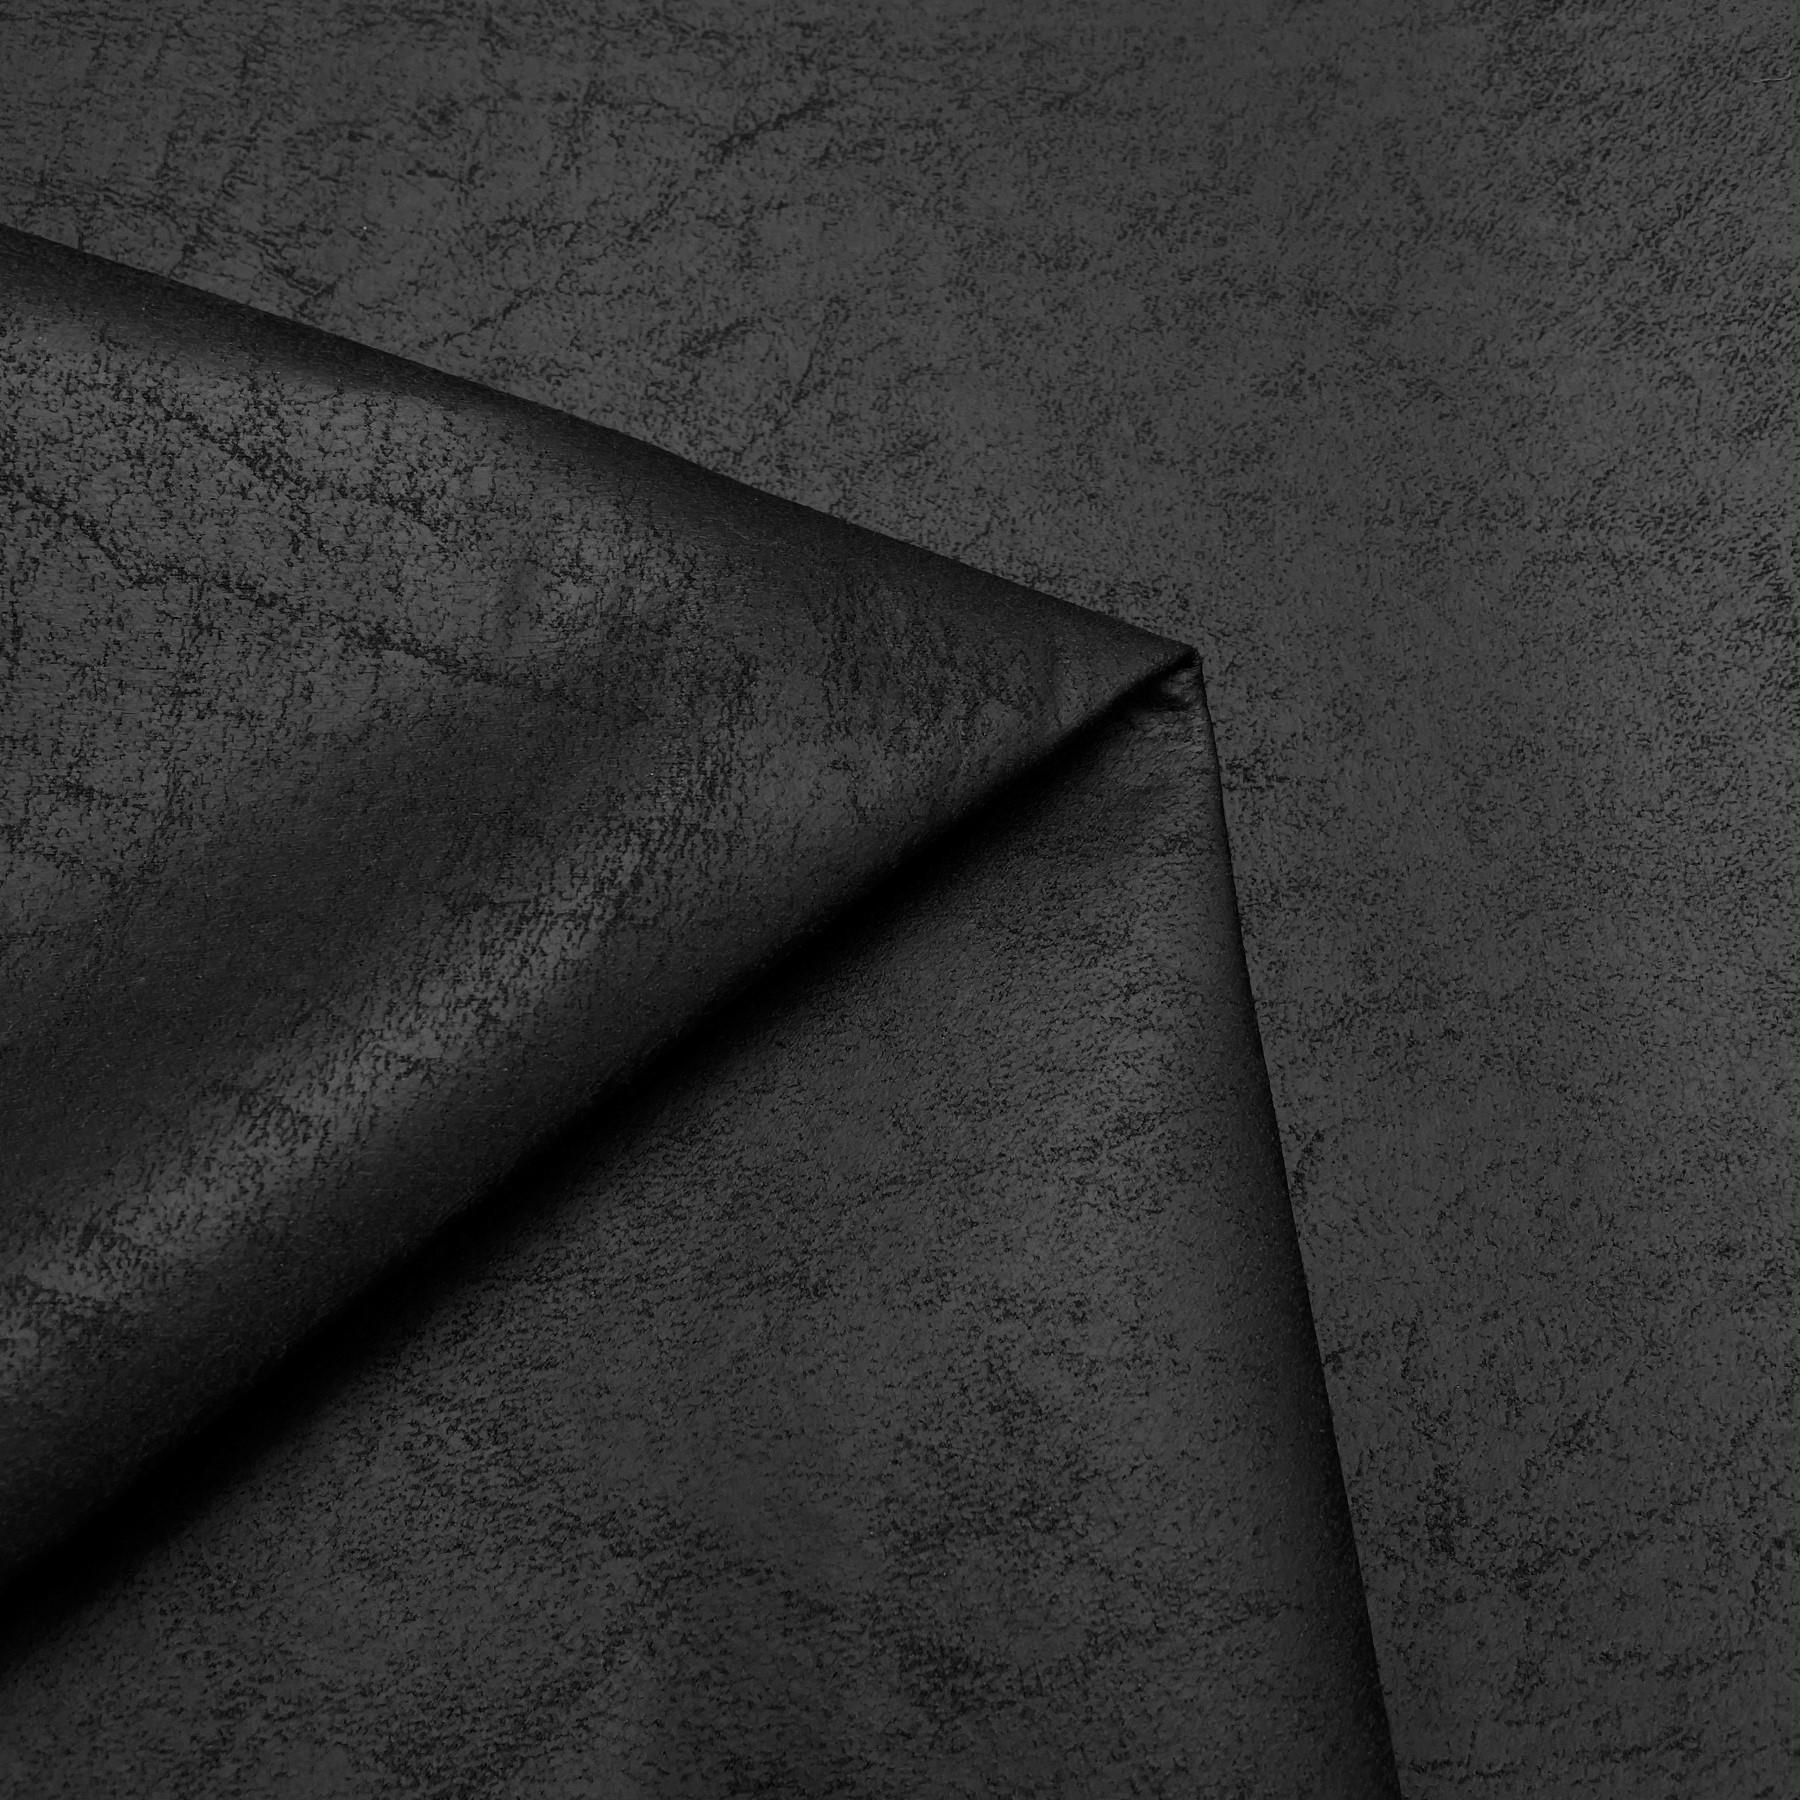 thumbnail 16 - AGED BROWN DISTRESSED ANTIQUED SUEDE FAUX LEATHER LEATHERETTE UPHOLSTERY FABRIC